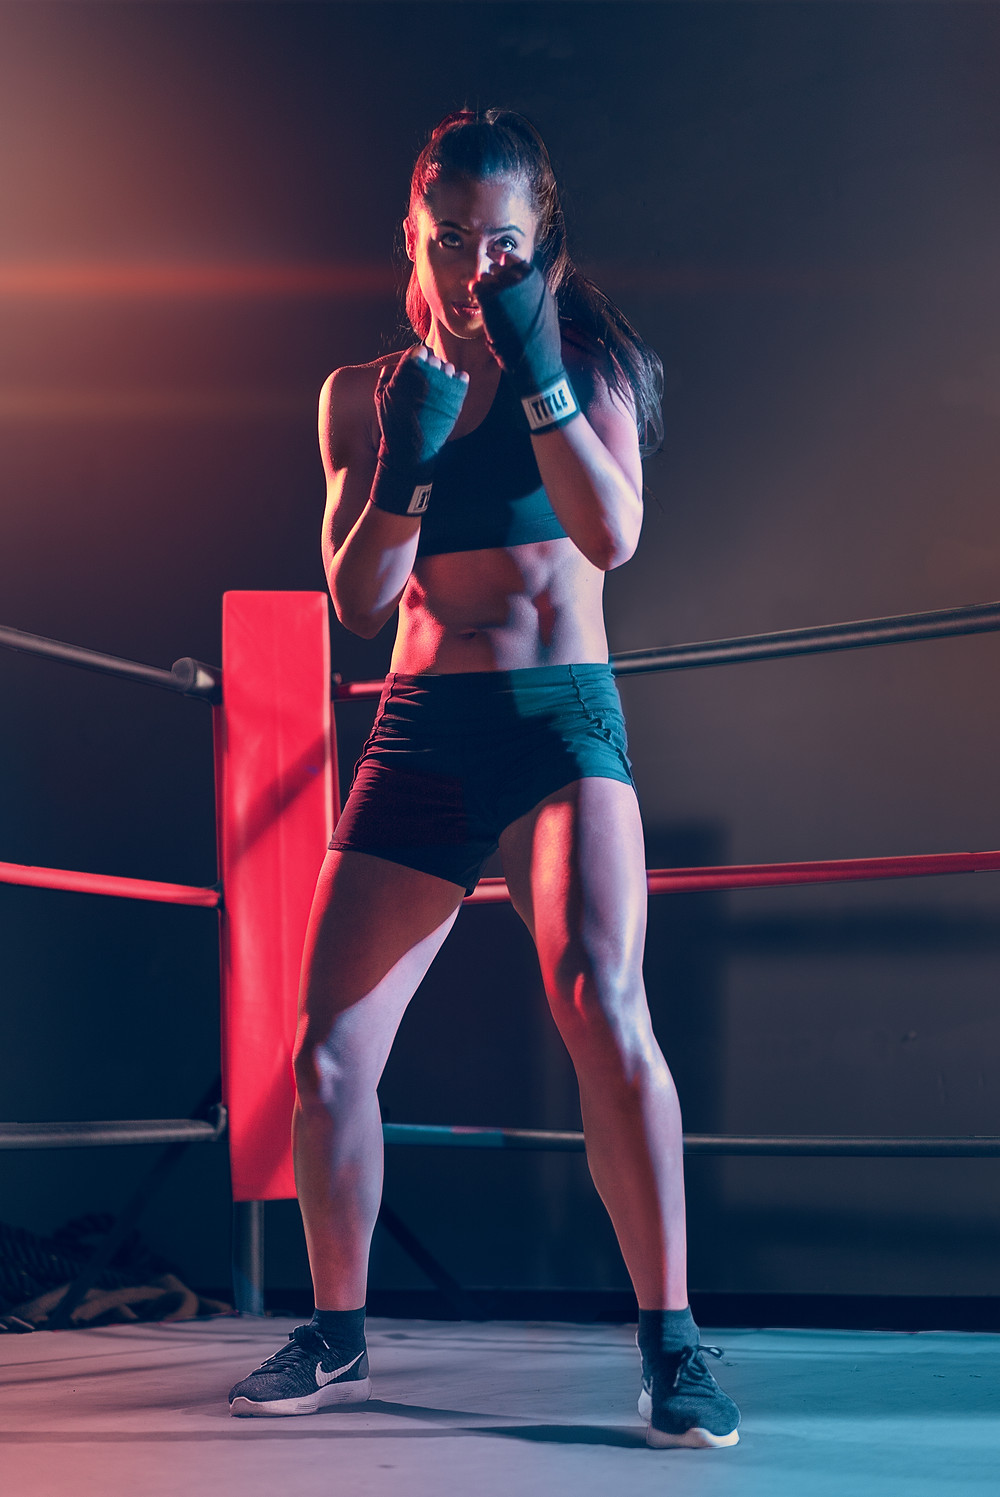 Sports Photography Boxing